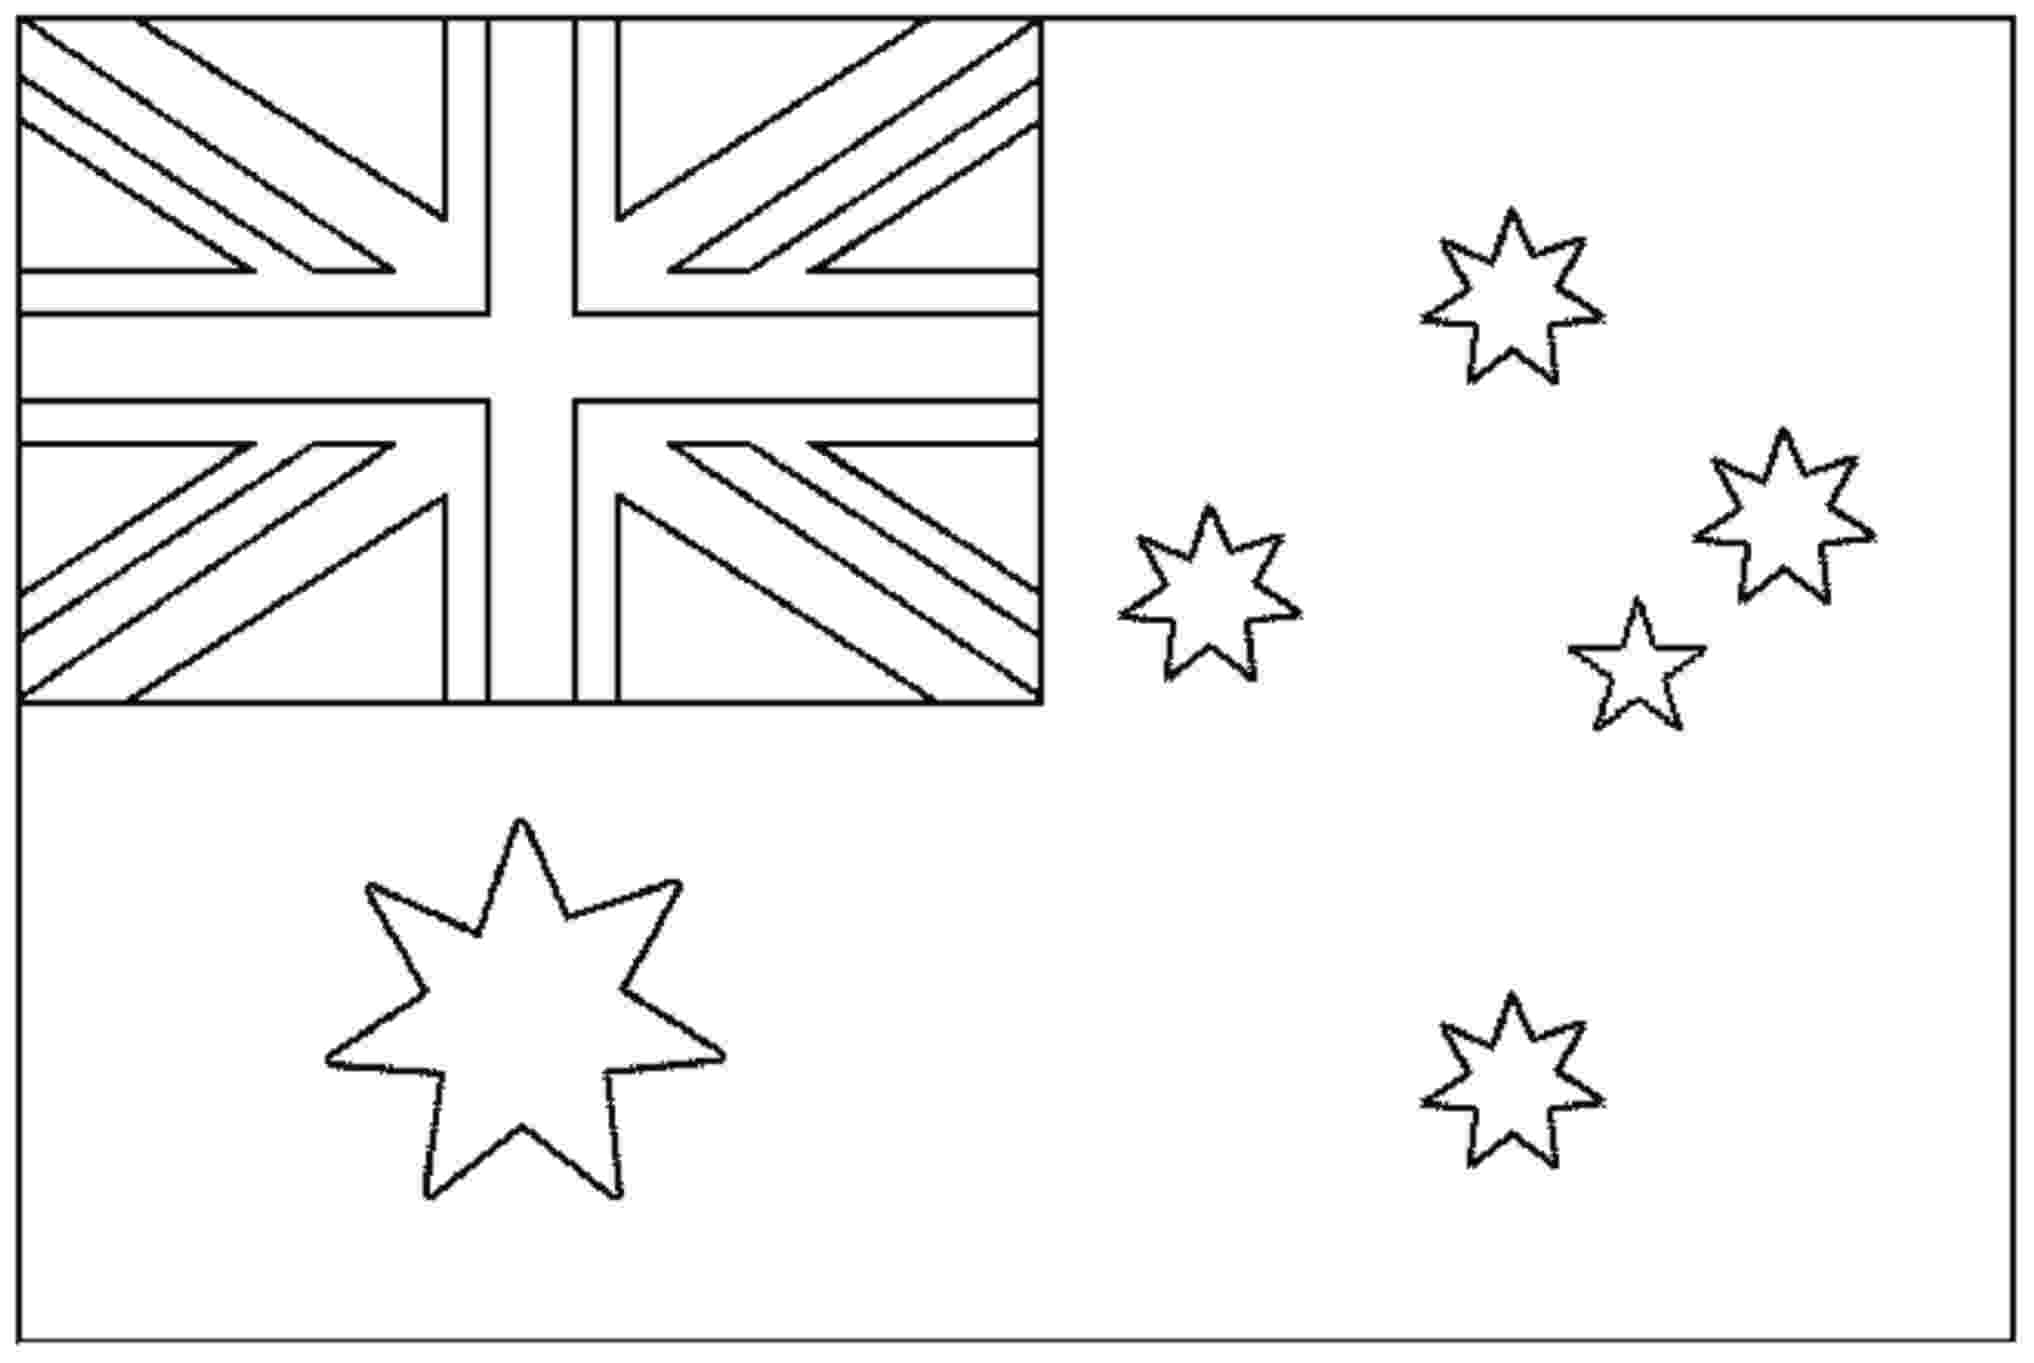 free printable flags to color flags free to color for kids flags kids coloring pages flags to free printable color